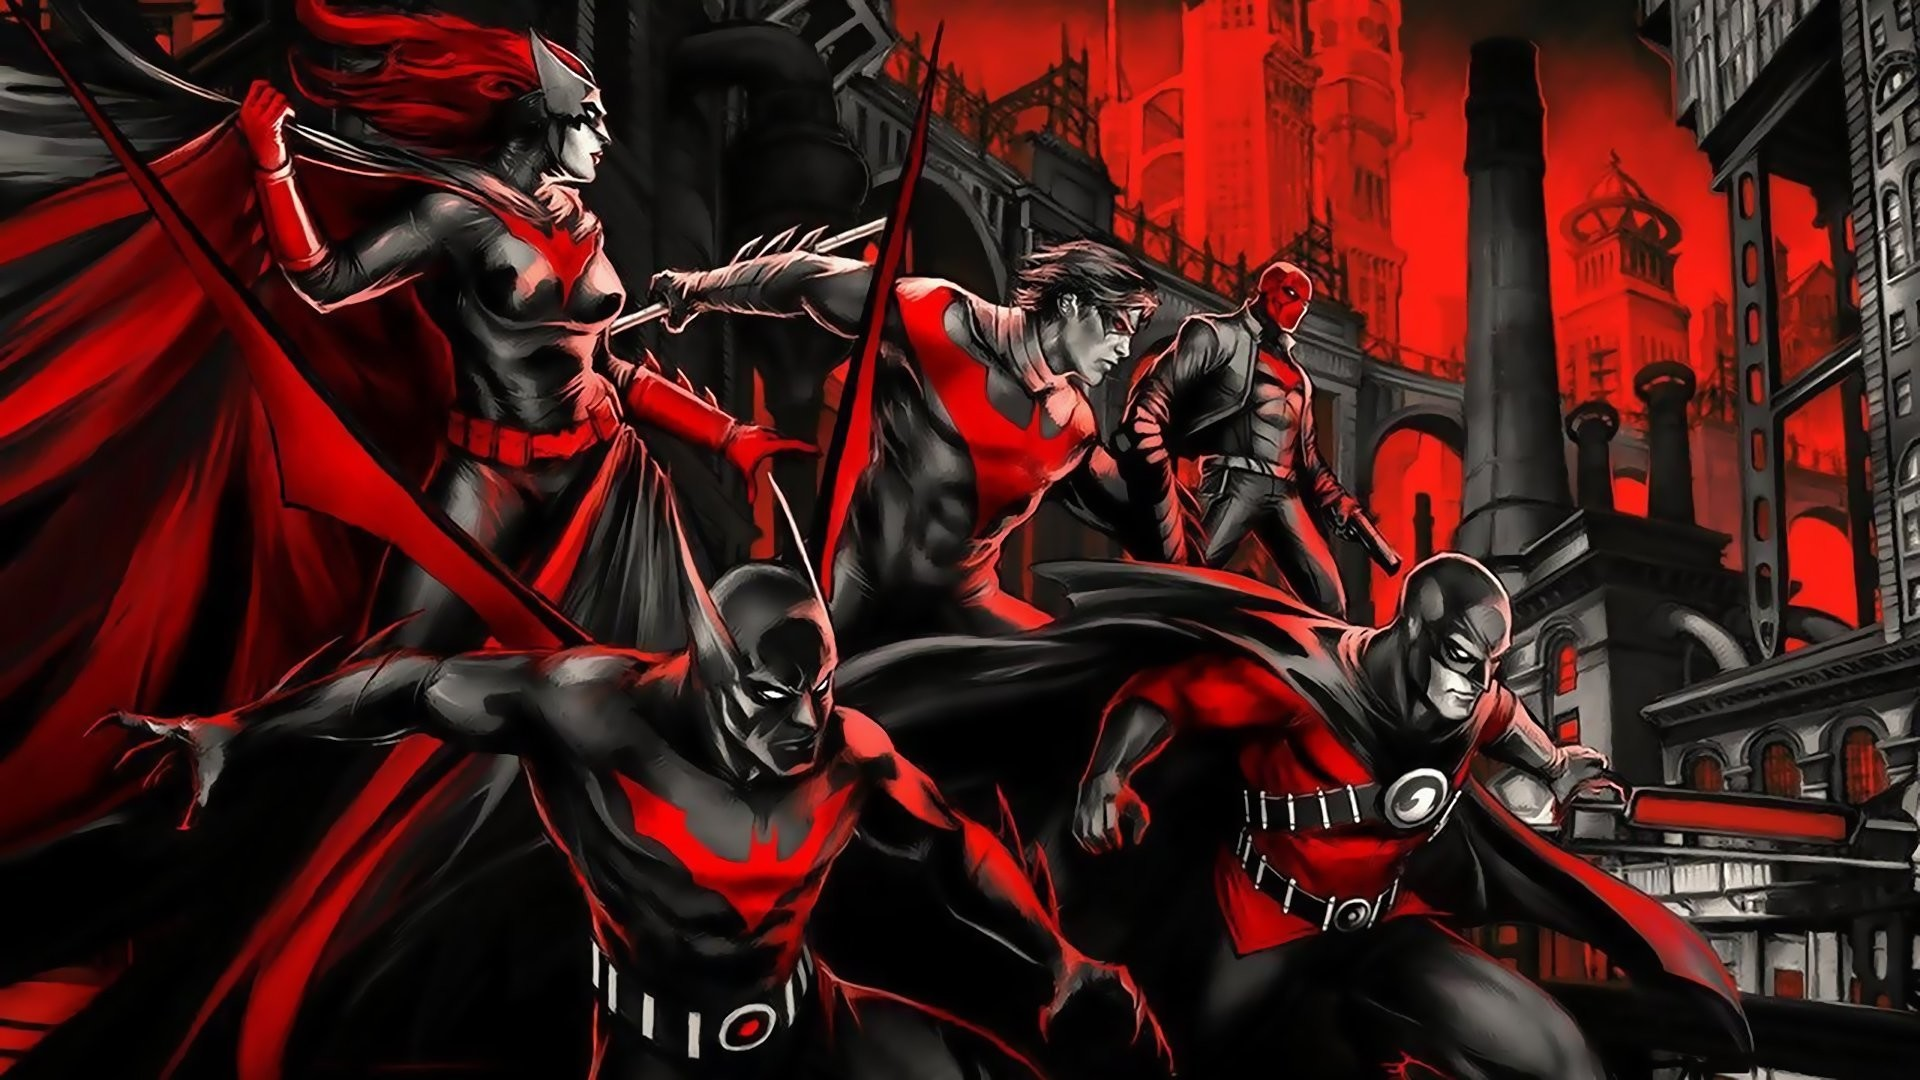 Tim Drake images REd Robin #1 HD wallpaper and background photos .